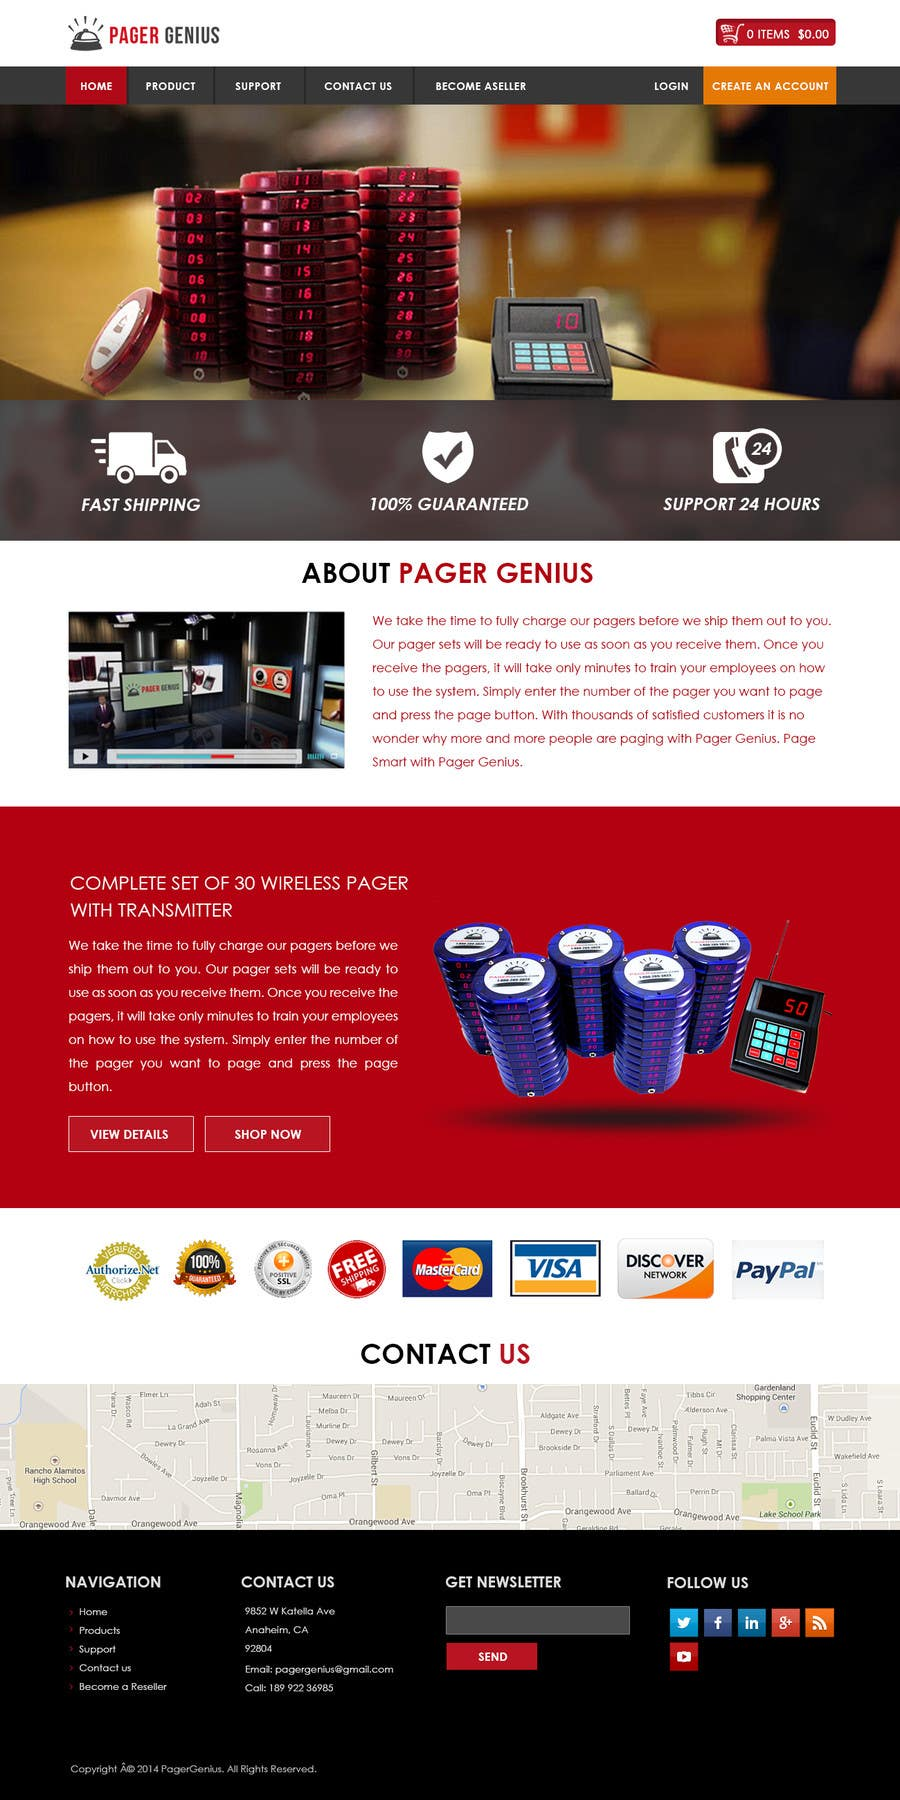 Contest Entry 80 For Design A Homepage